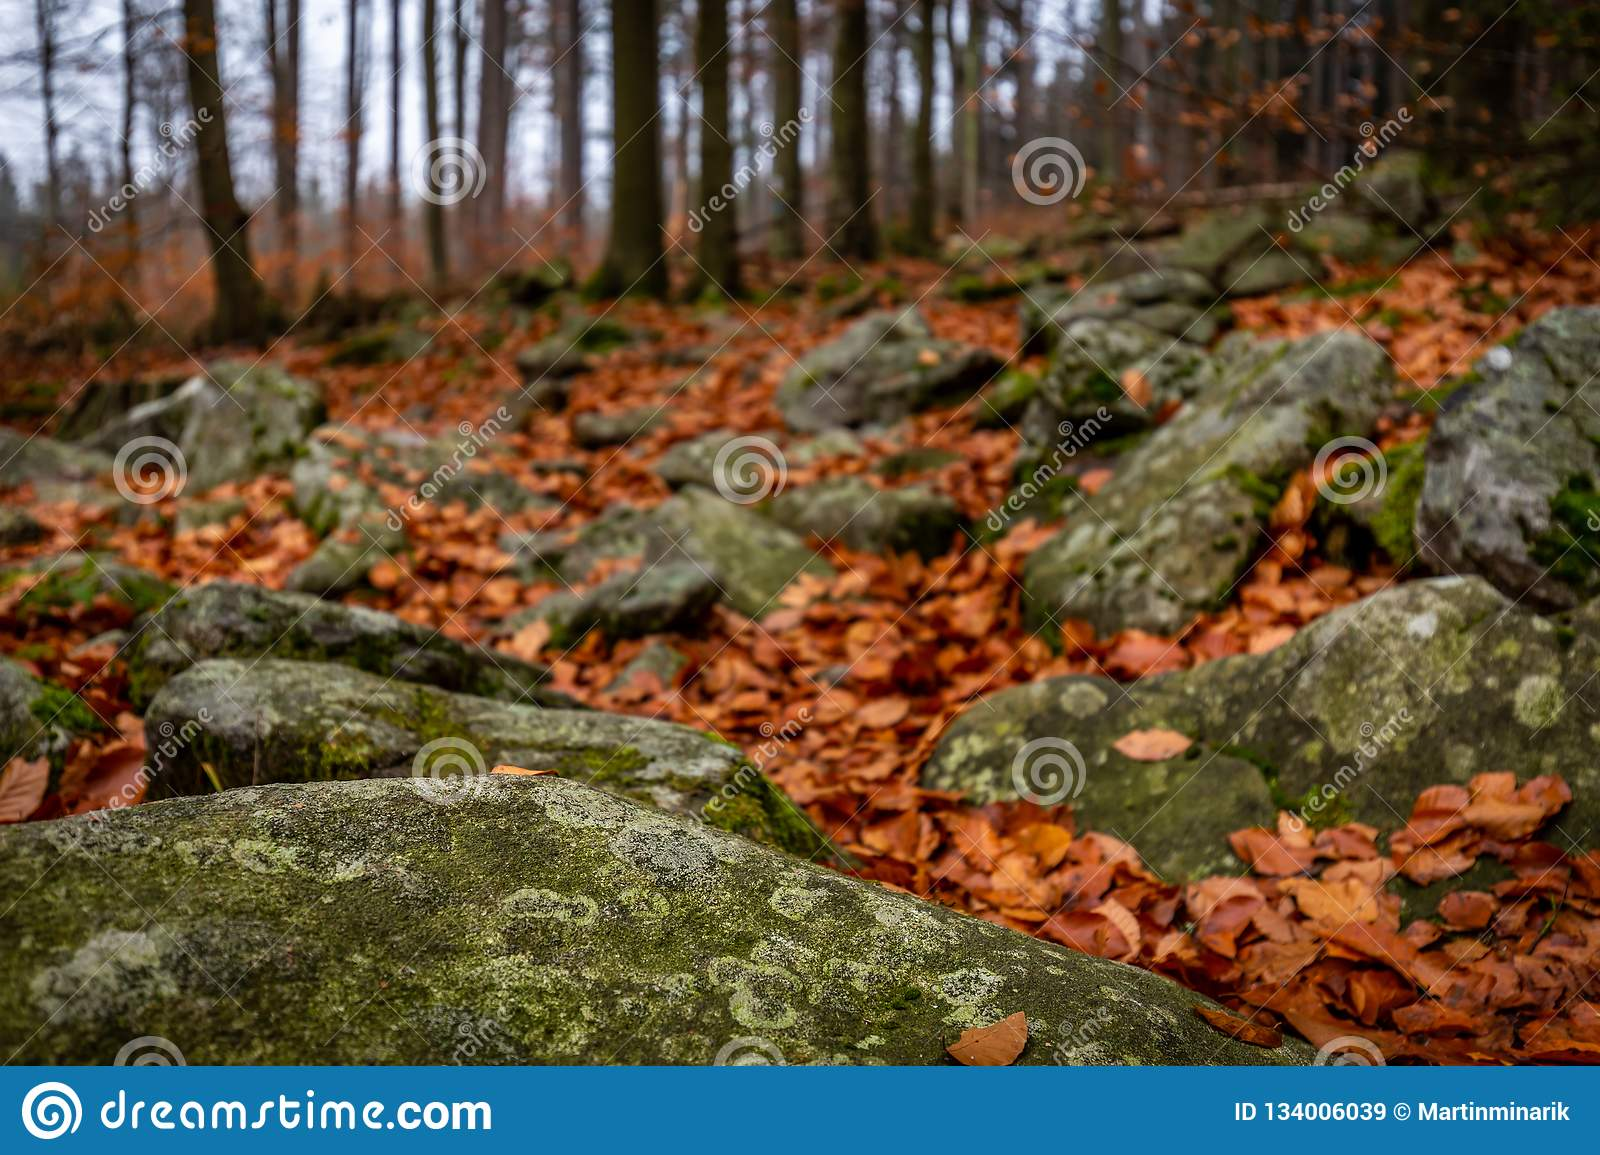 Close up on autumn forest with rocks full of moss and colorful fallen leaves on the ground